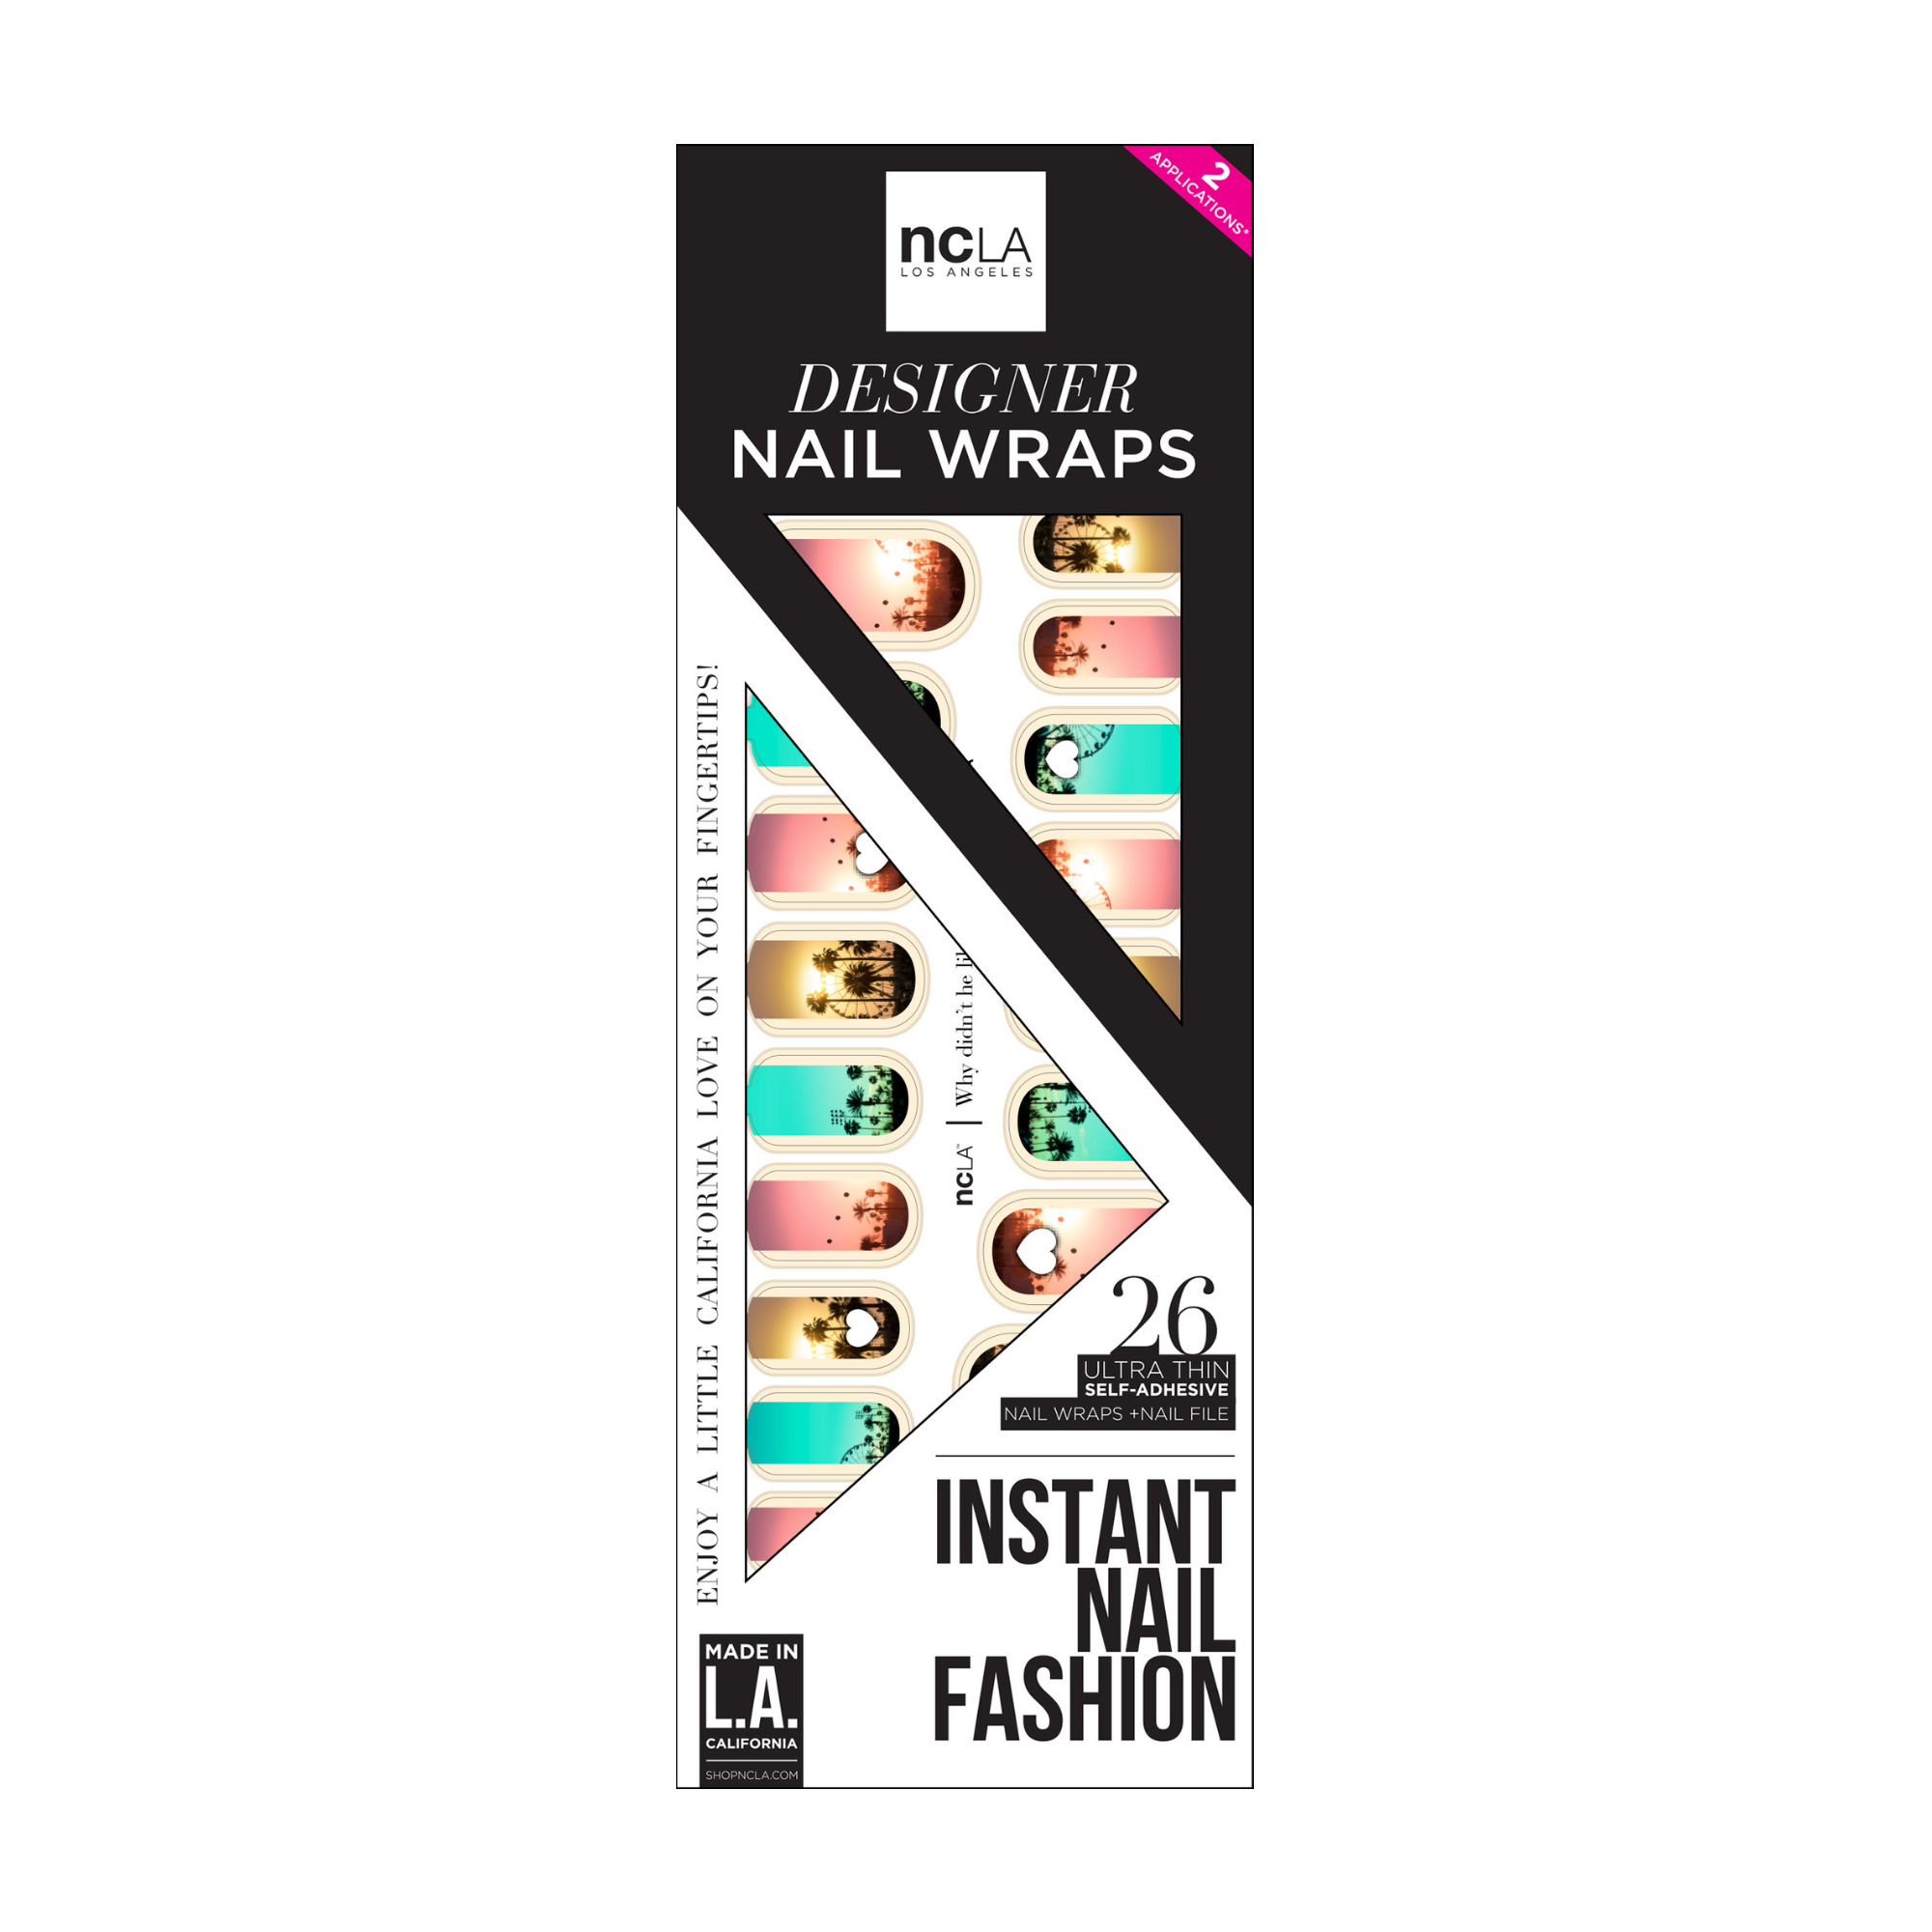 NCLA Nail Wraps Why Didn't He Like My Pic Yet?